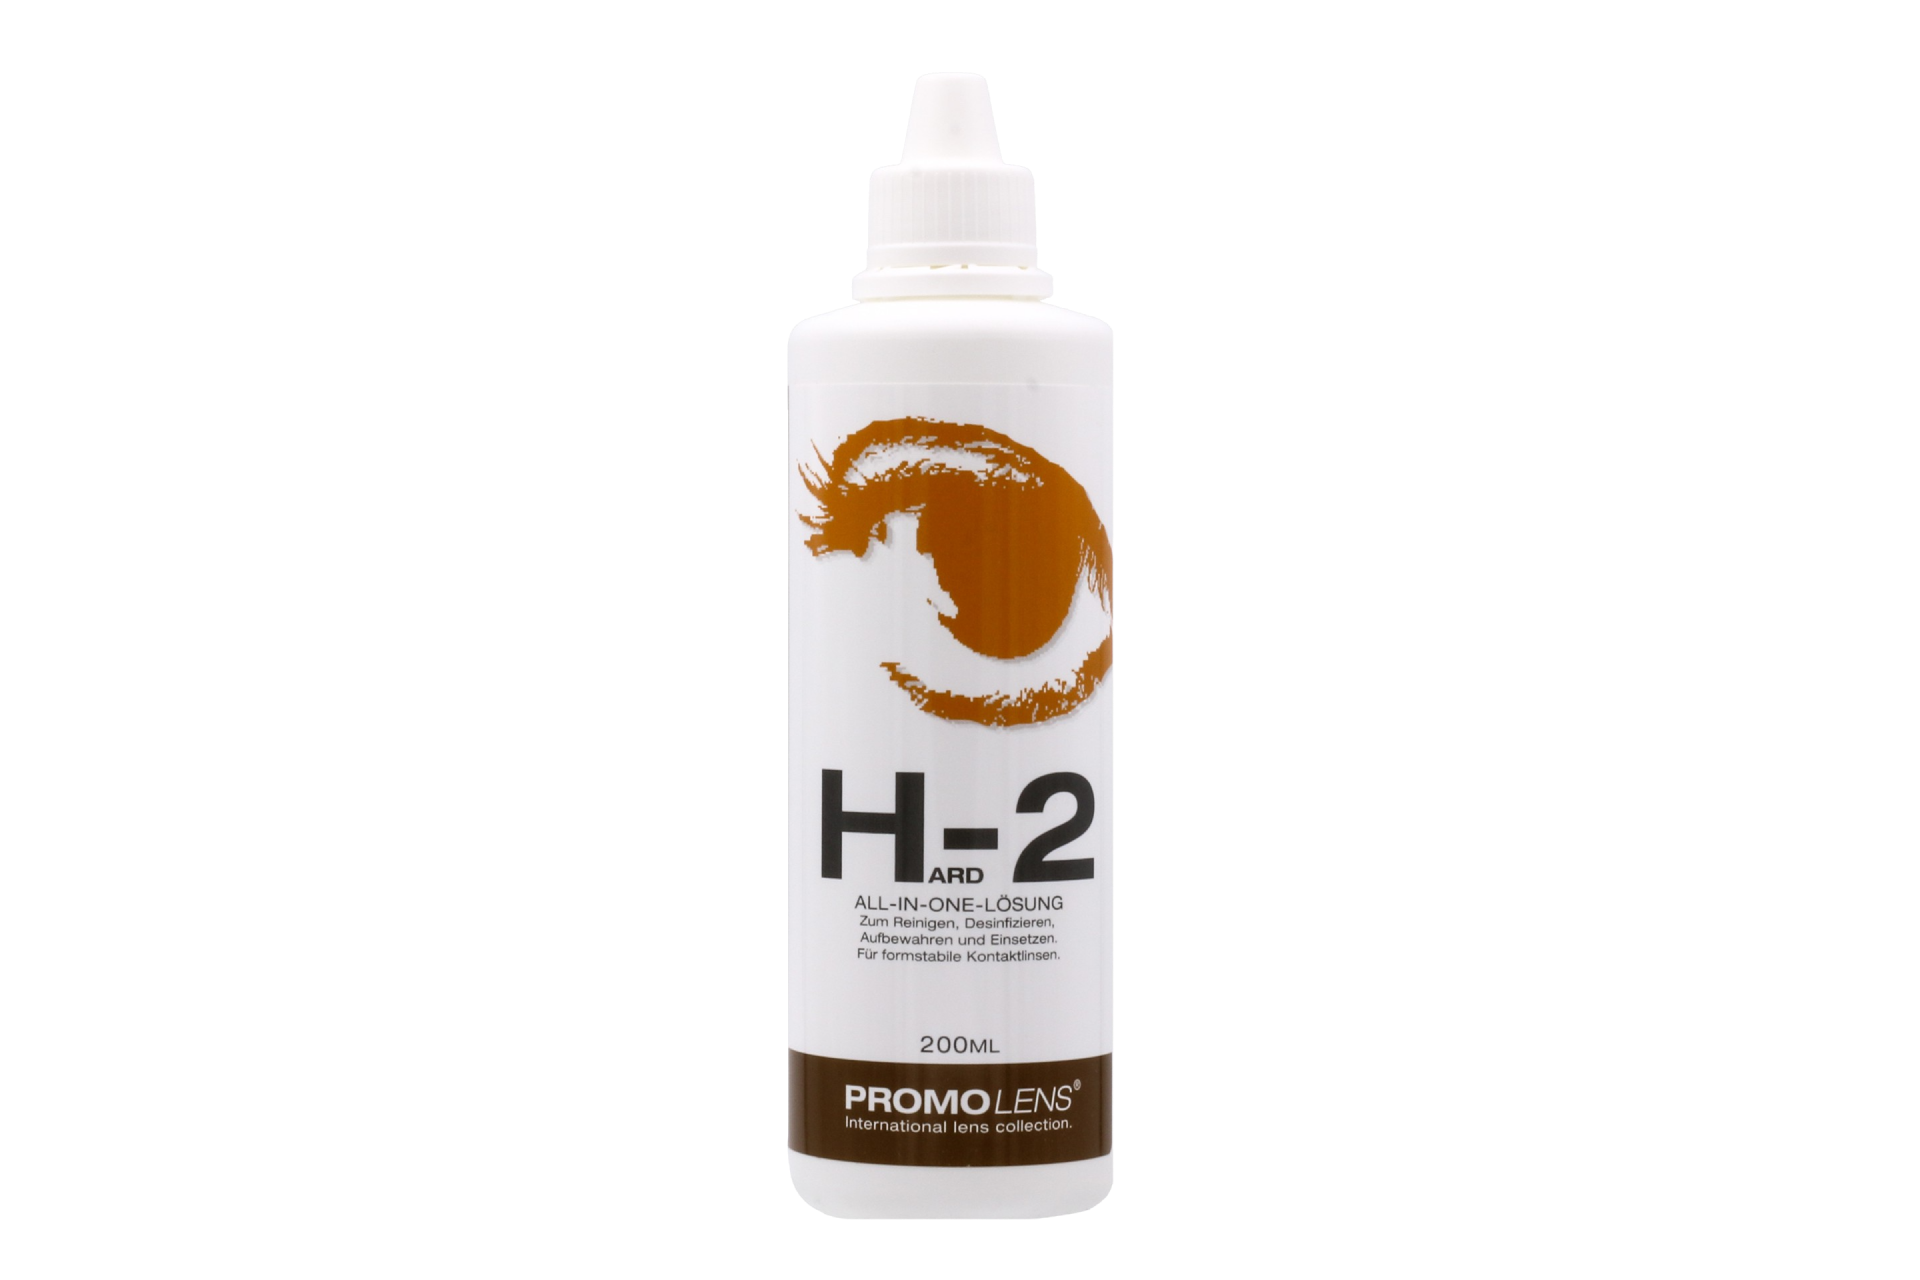 HARD-2 ALL-IN-ONE-LÖSUNG (200 ML)